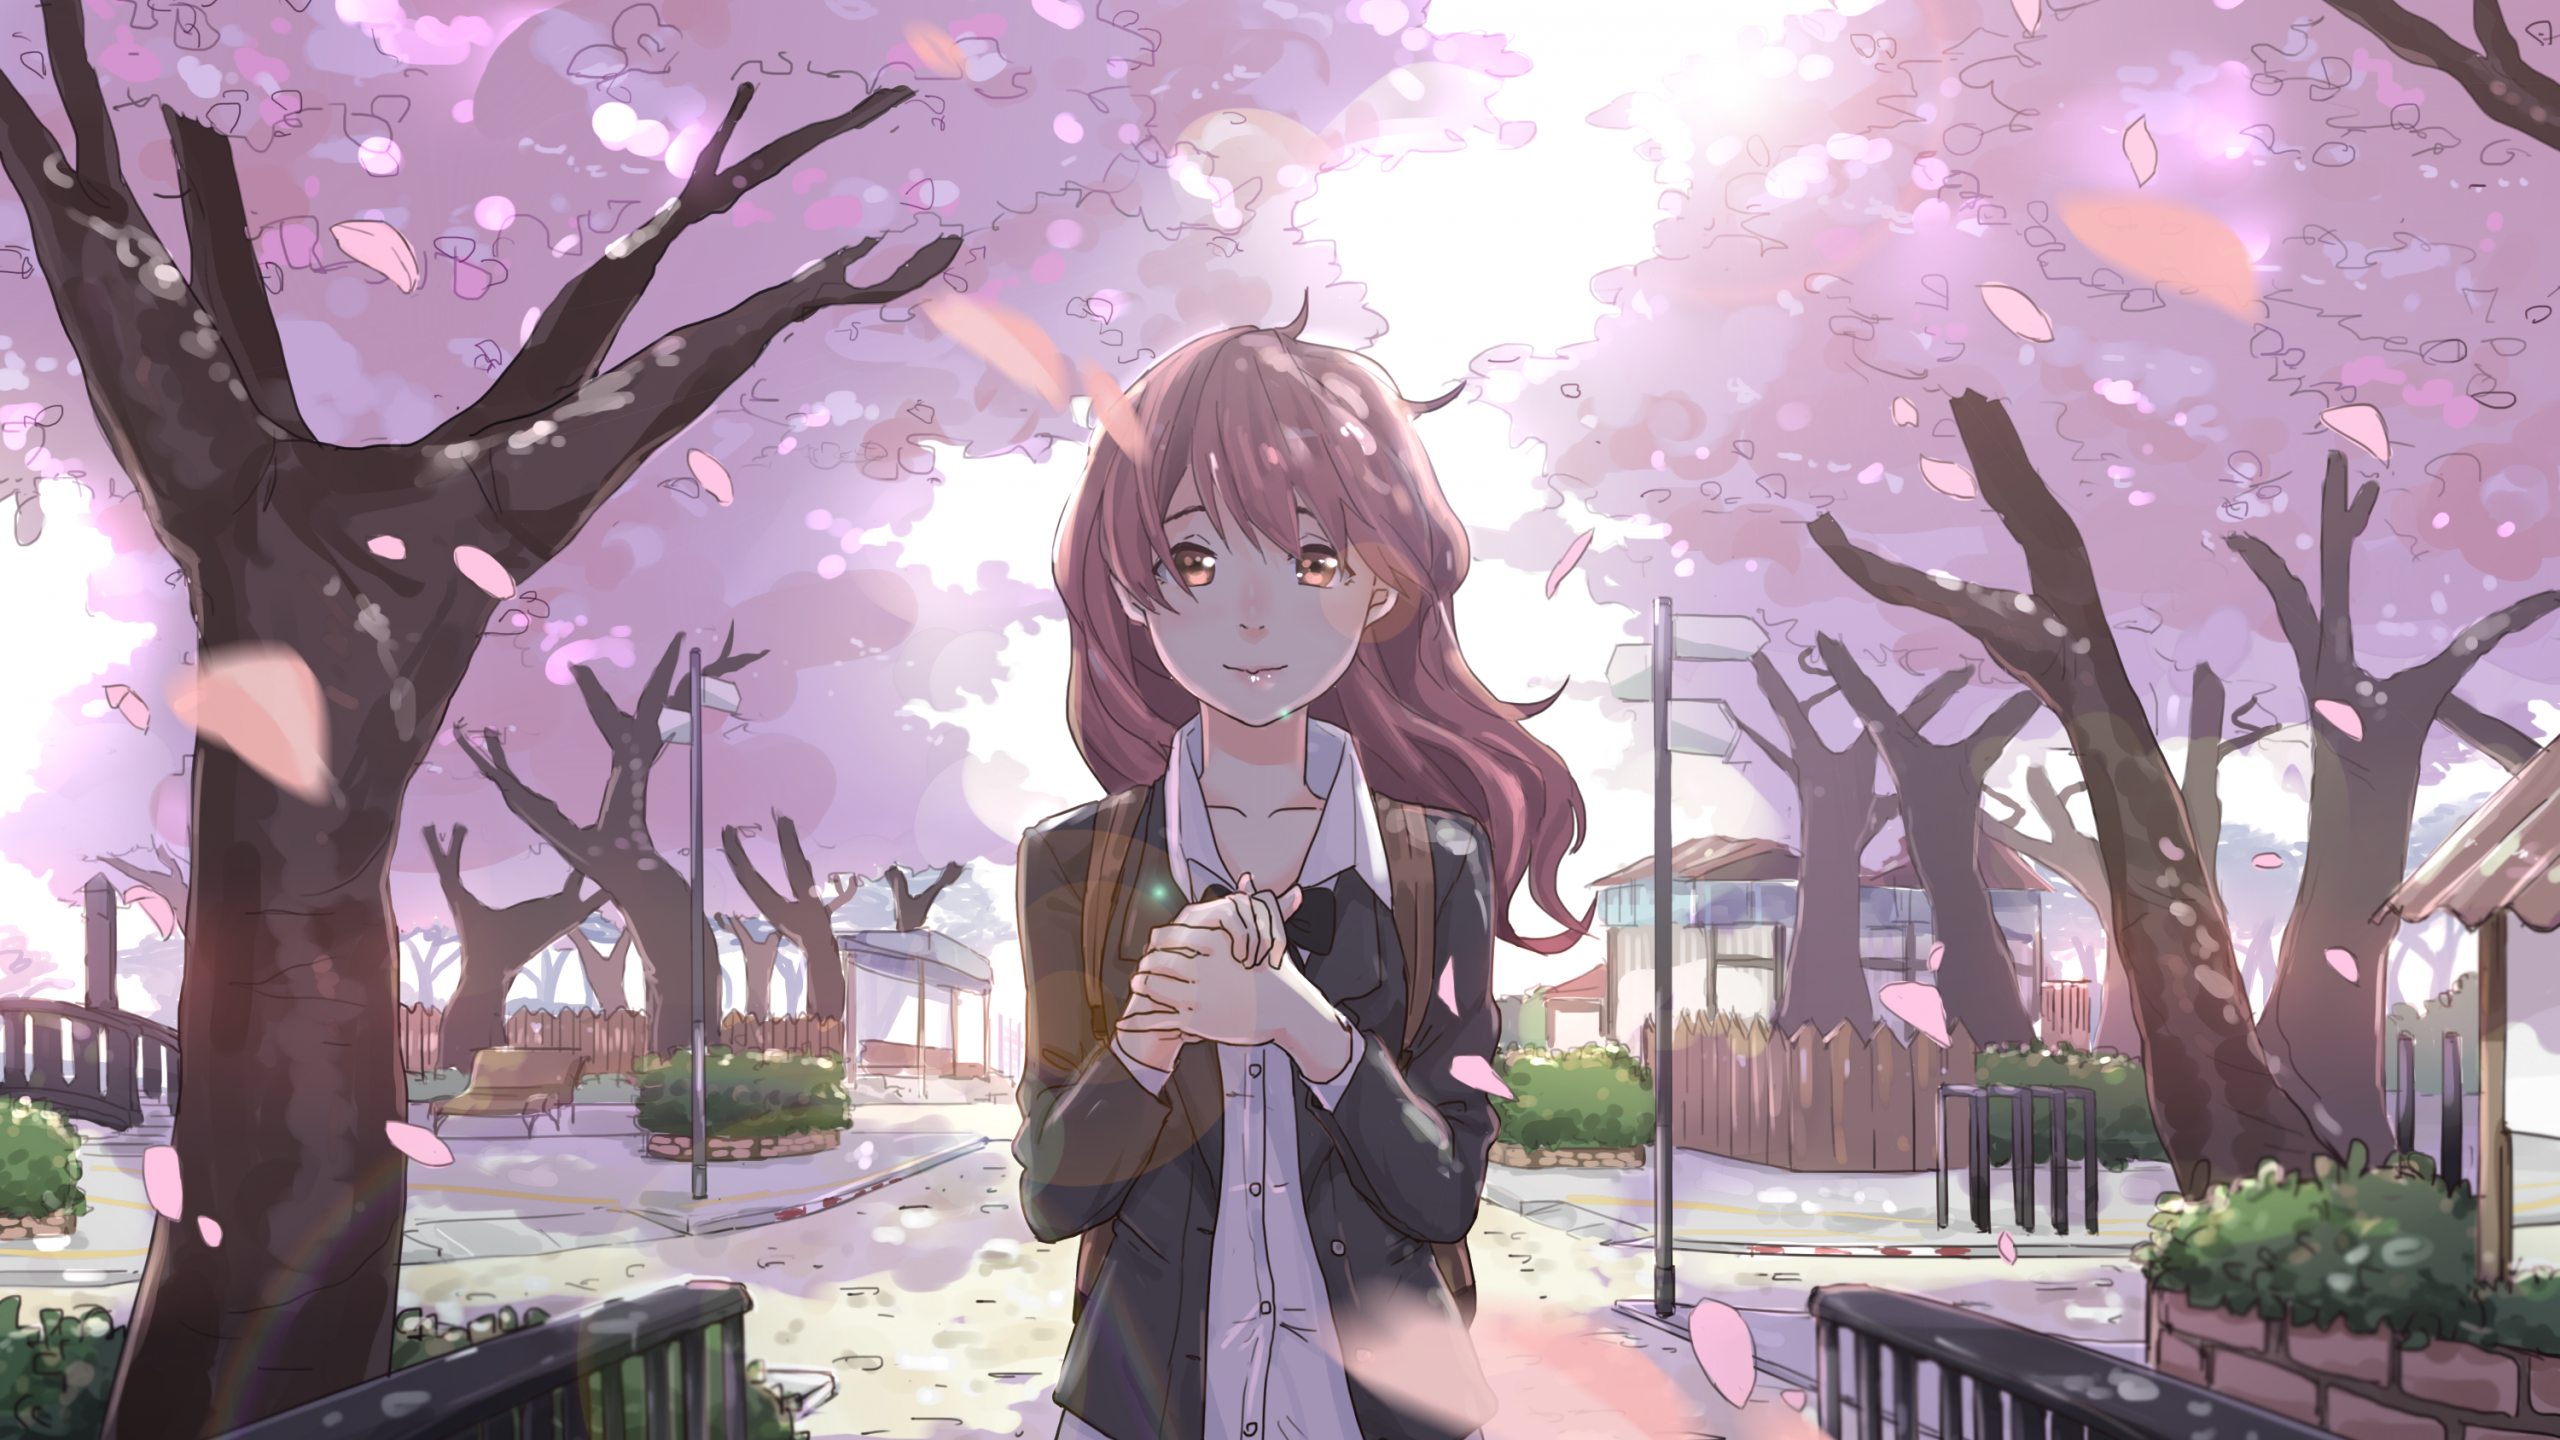 koe no katachi nishimiya shouko sakura blossom school uniform